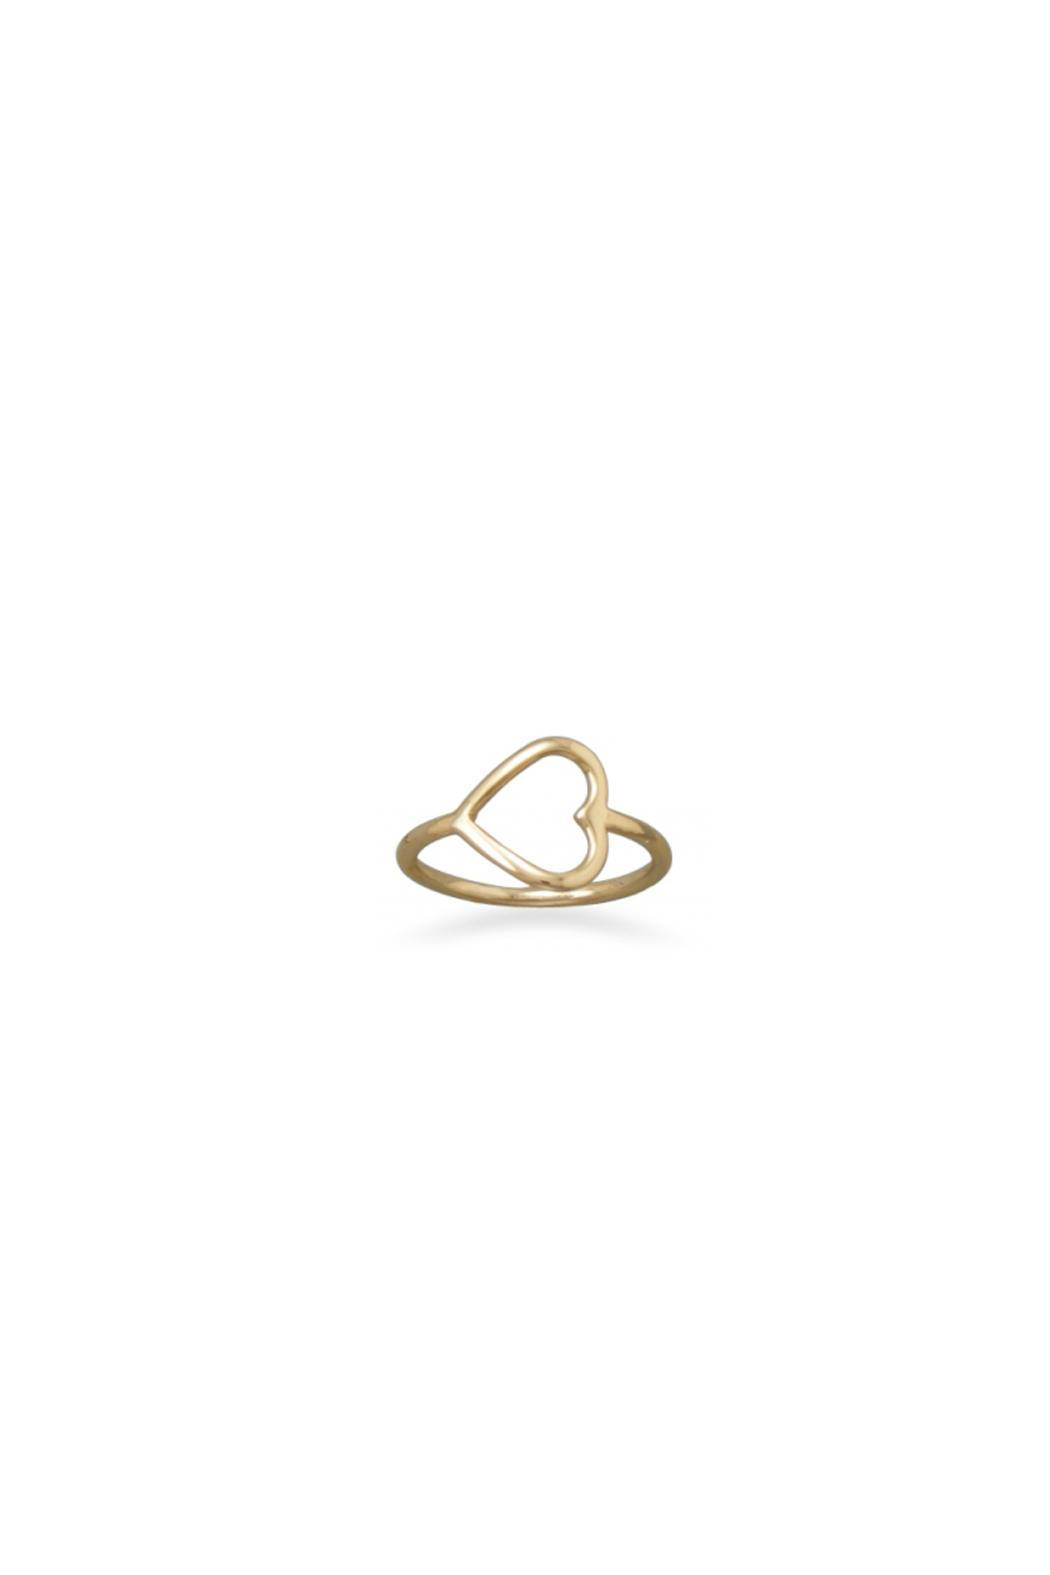 Wild Lilies Jewelry  Gold Heart Ring - Main Image